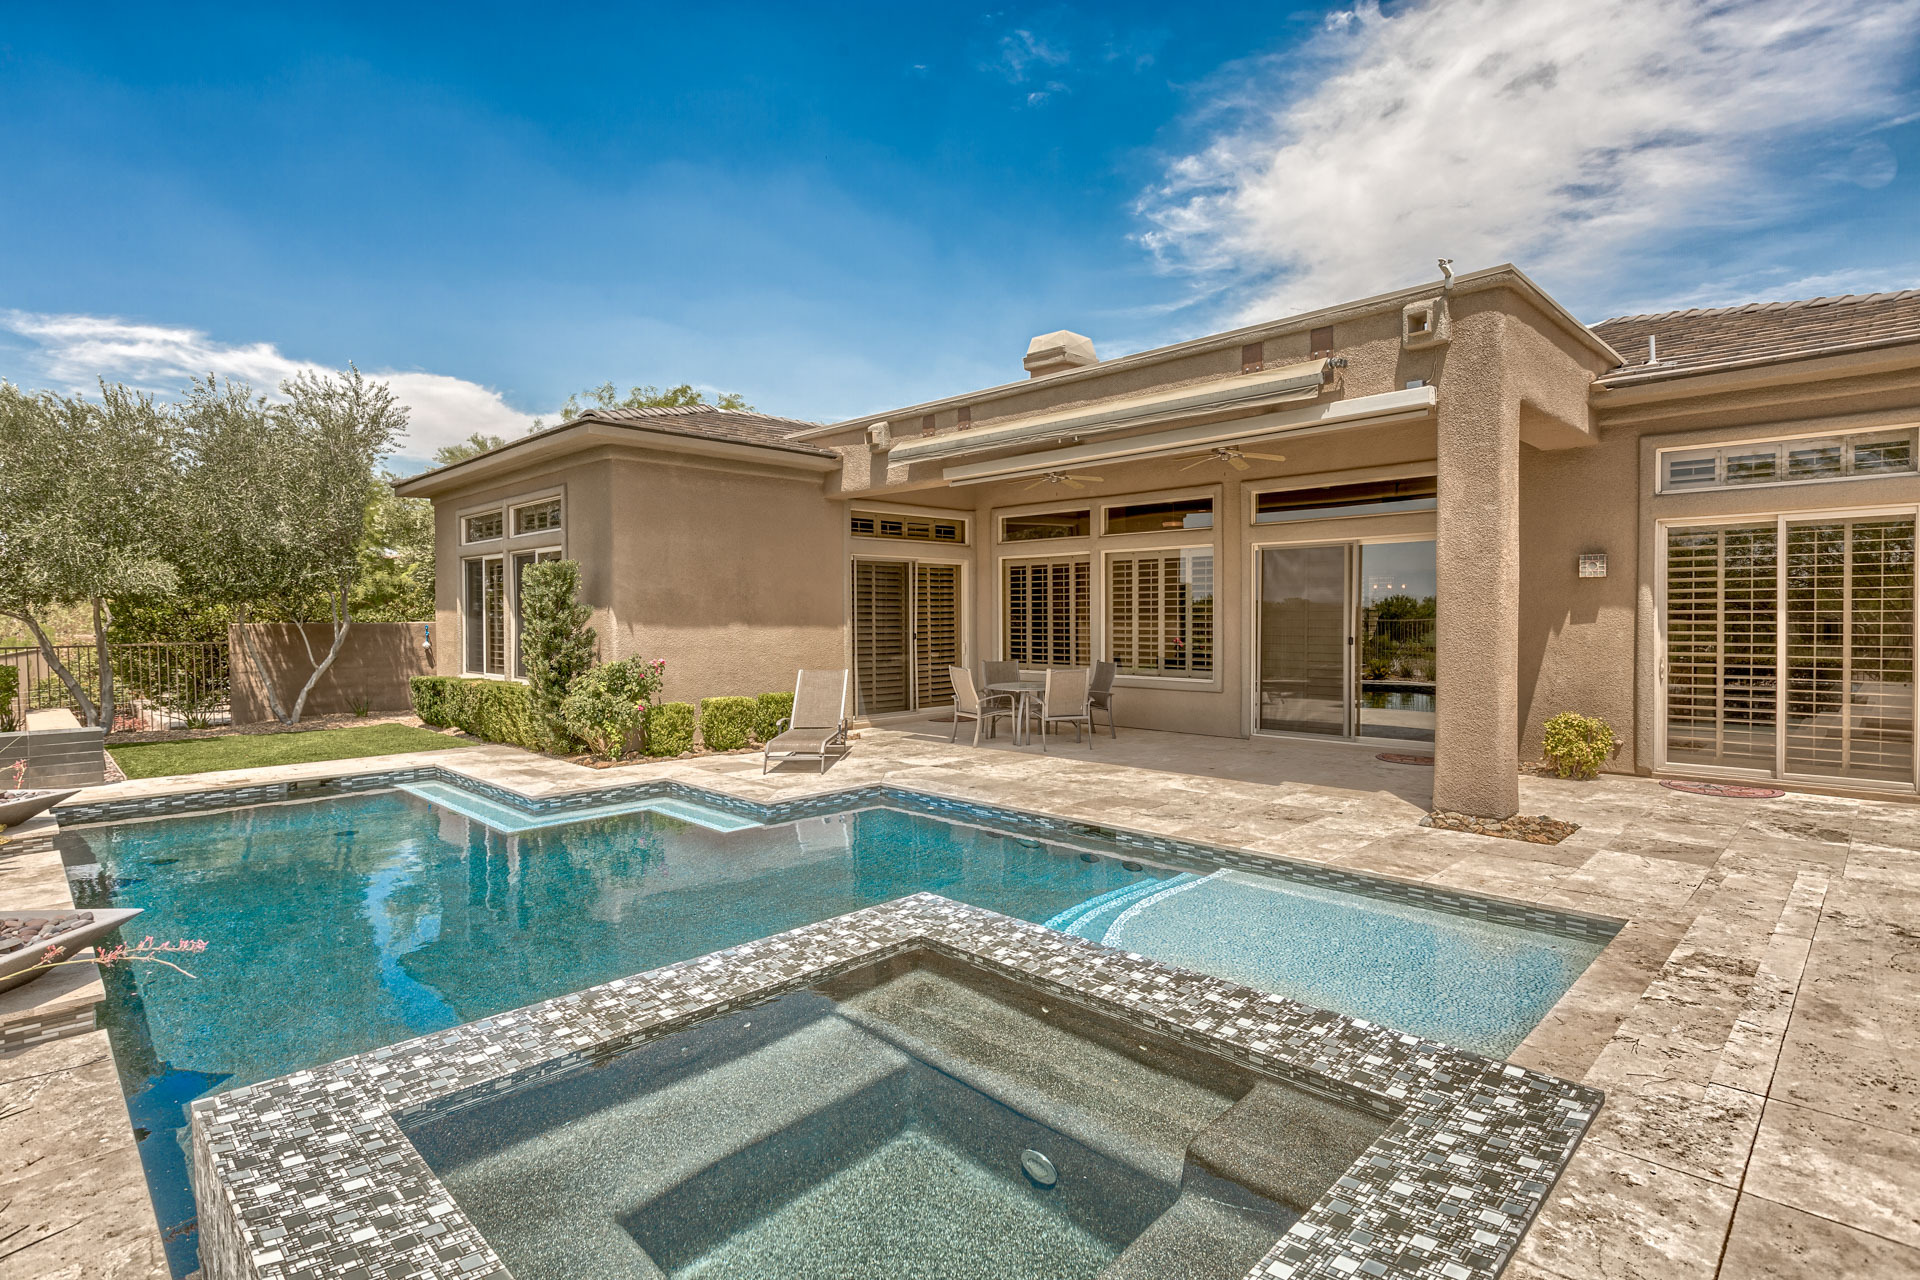 Contemporary Anthem Country Club Pool Home For Sale